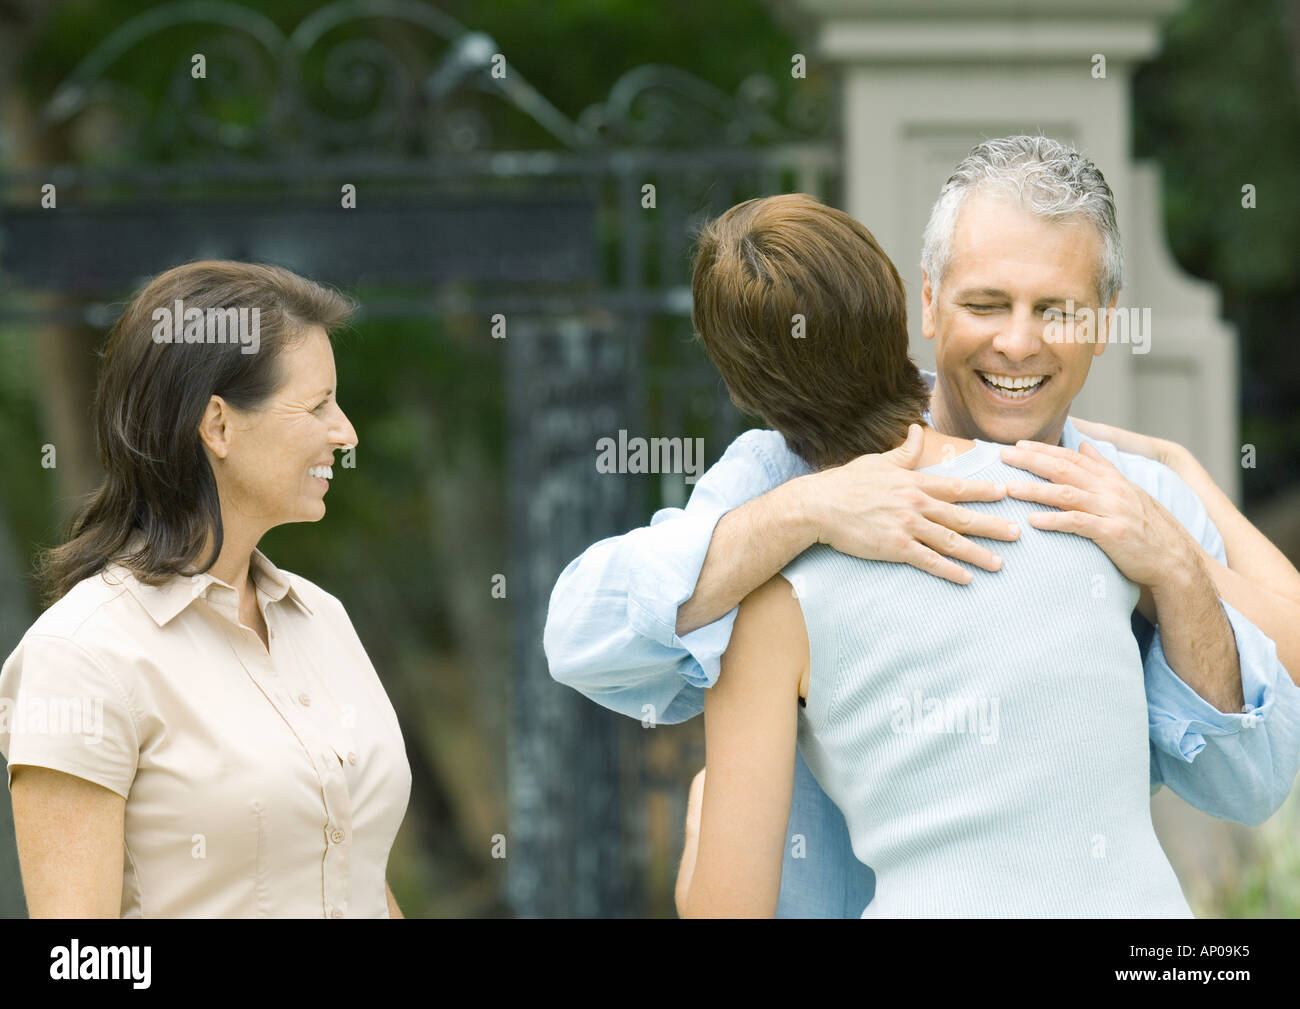 Woman hugging man as second woman watches, smiling - Stock Image